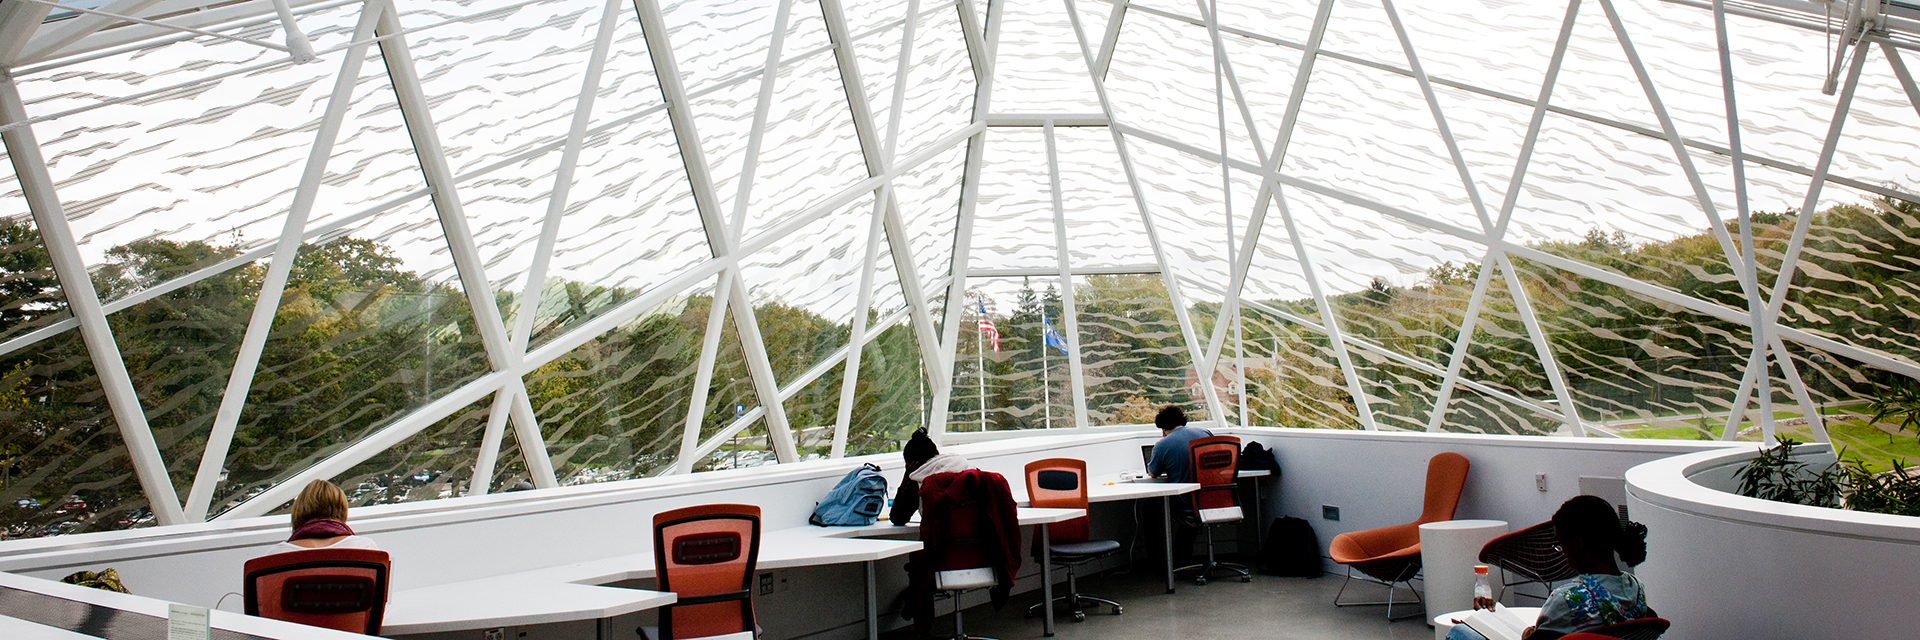 Students studying in atrium